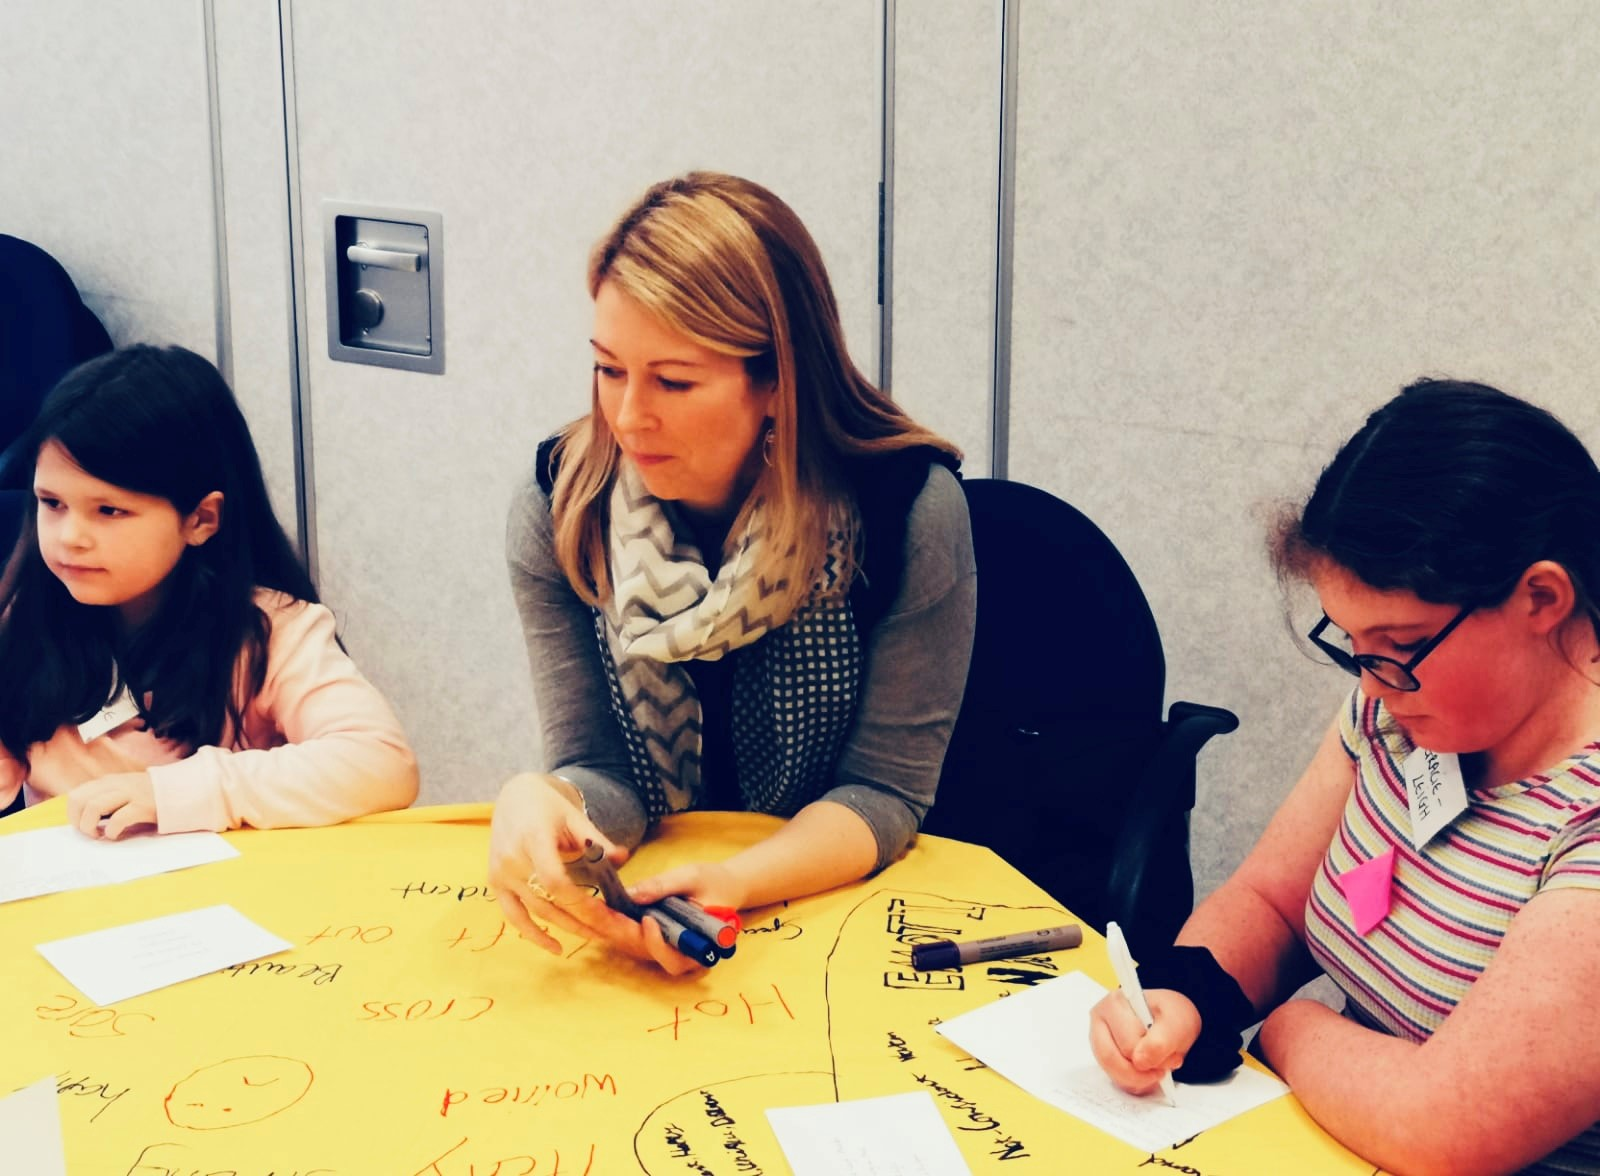 A woman sits at a table with two young girls either side of her. They are drawing on yellow paper.